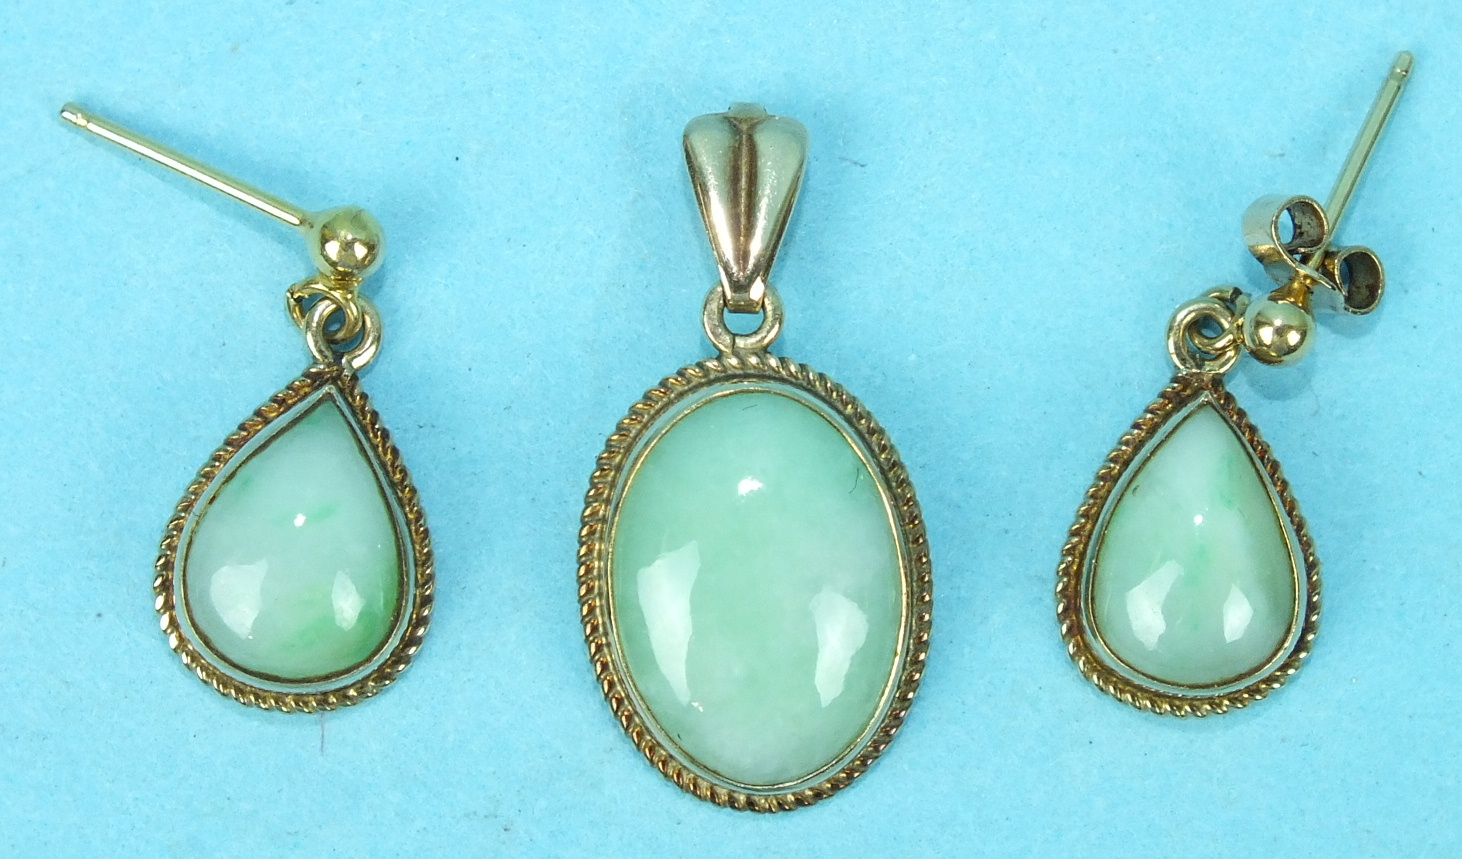 Lot 169 - An oval jade pendant in 9ct gold rope-twist mount and a pair of matching earrings of teardrop